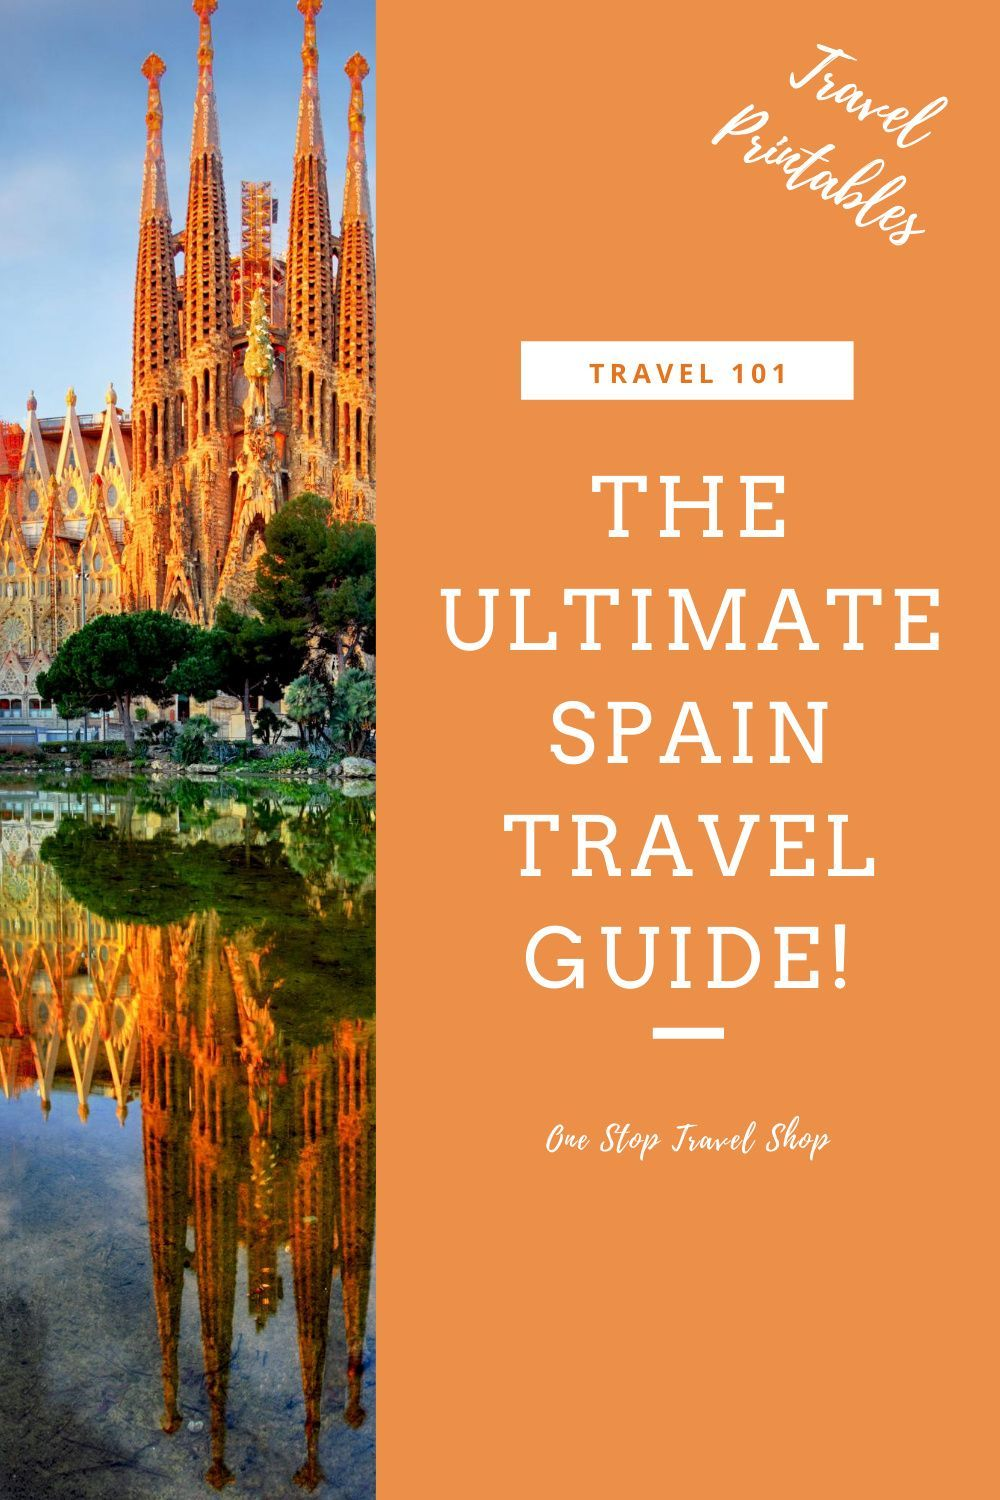 Vacation planning is stressful. I love using pre-made travel printables, itineraries, and packing lists to help me plan. This bundle of Spain travel printables will help you plan your next Spanish vacation! Included are packing lists, a curated and tested 2-week itinerary, and a Spanish language travel guide. Visit Barcelona, Girona, Madrid, and Seville with this incredible itinerary, and make travel planning easier!